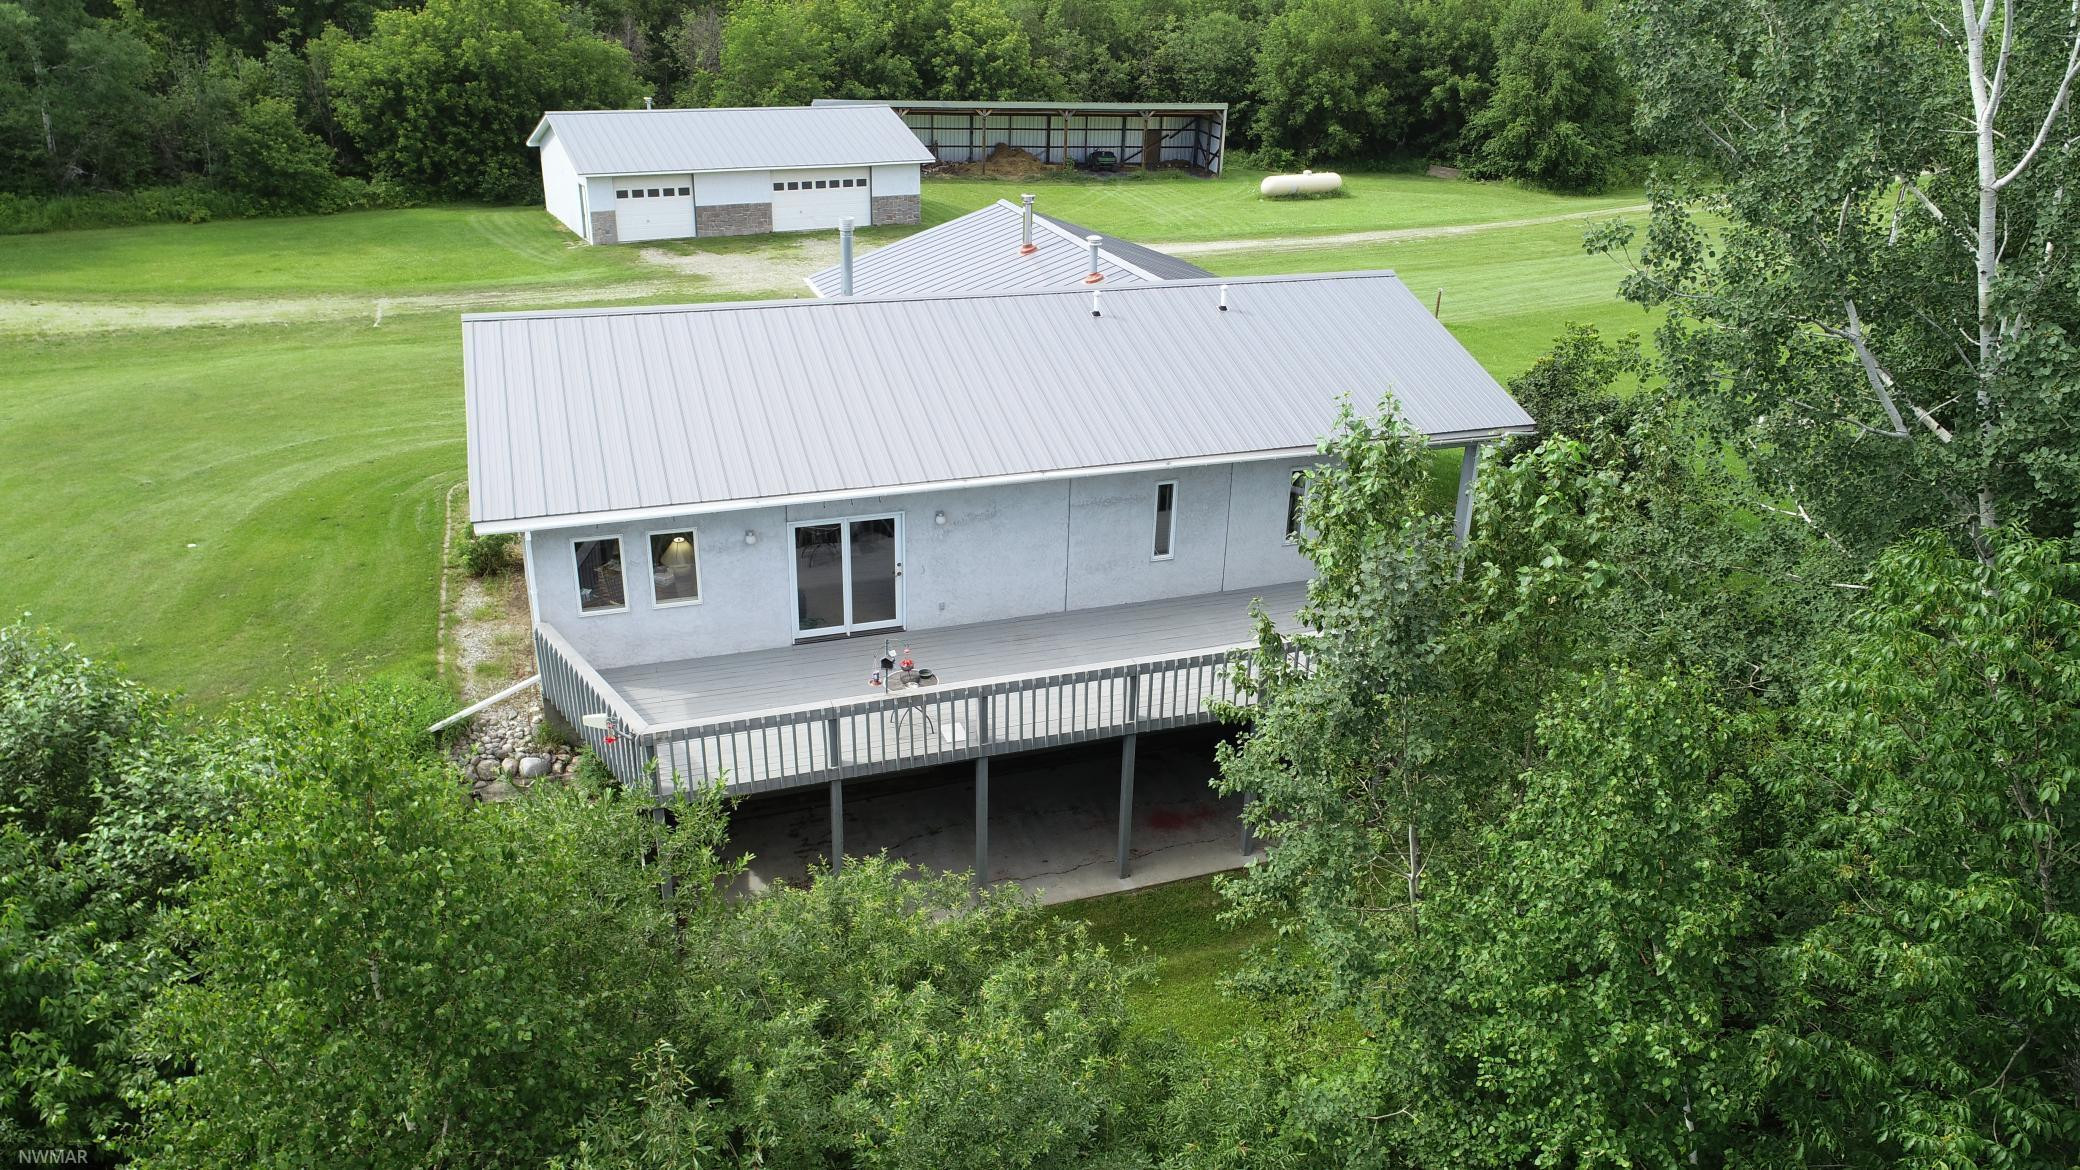 4748 County Road 73 E, Littlefork, MN 56653